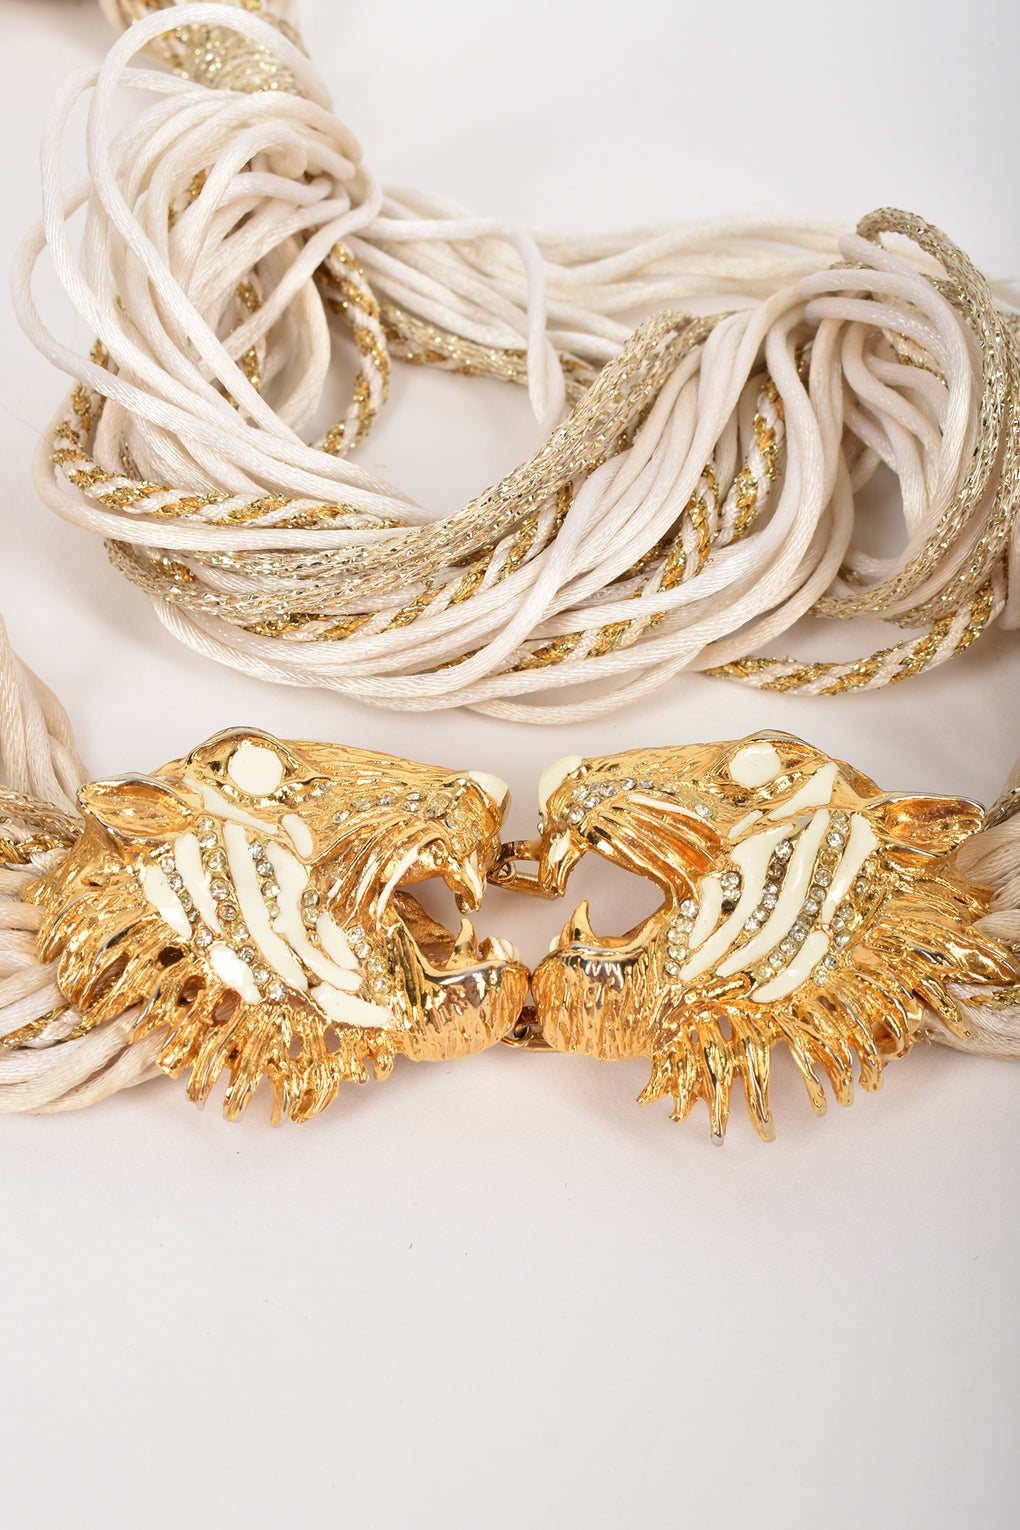 80s crystals tiger heads cord belt / M